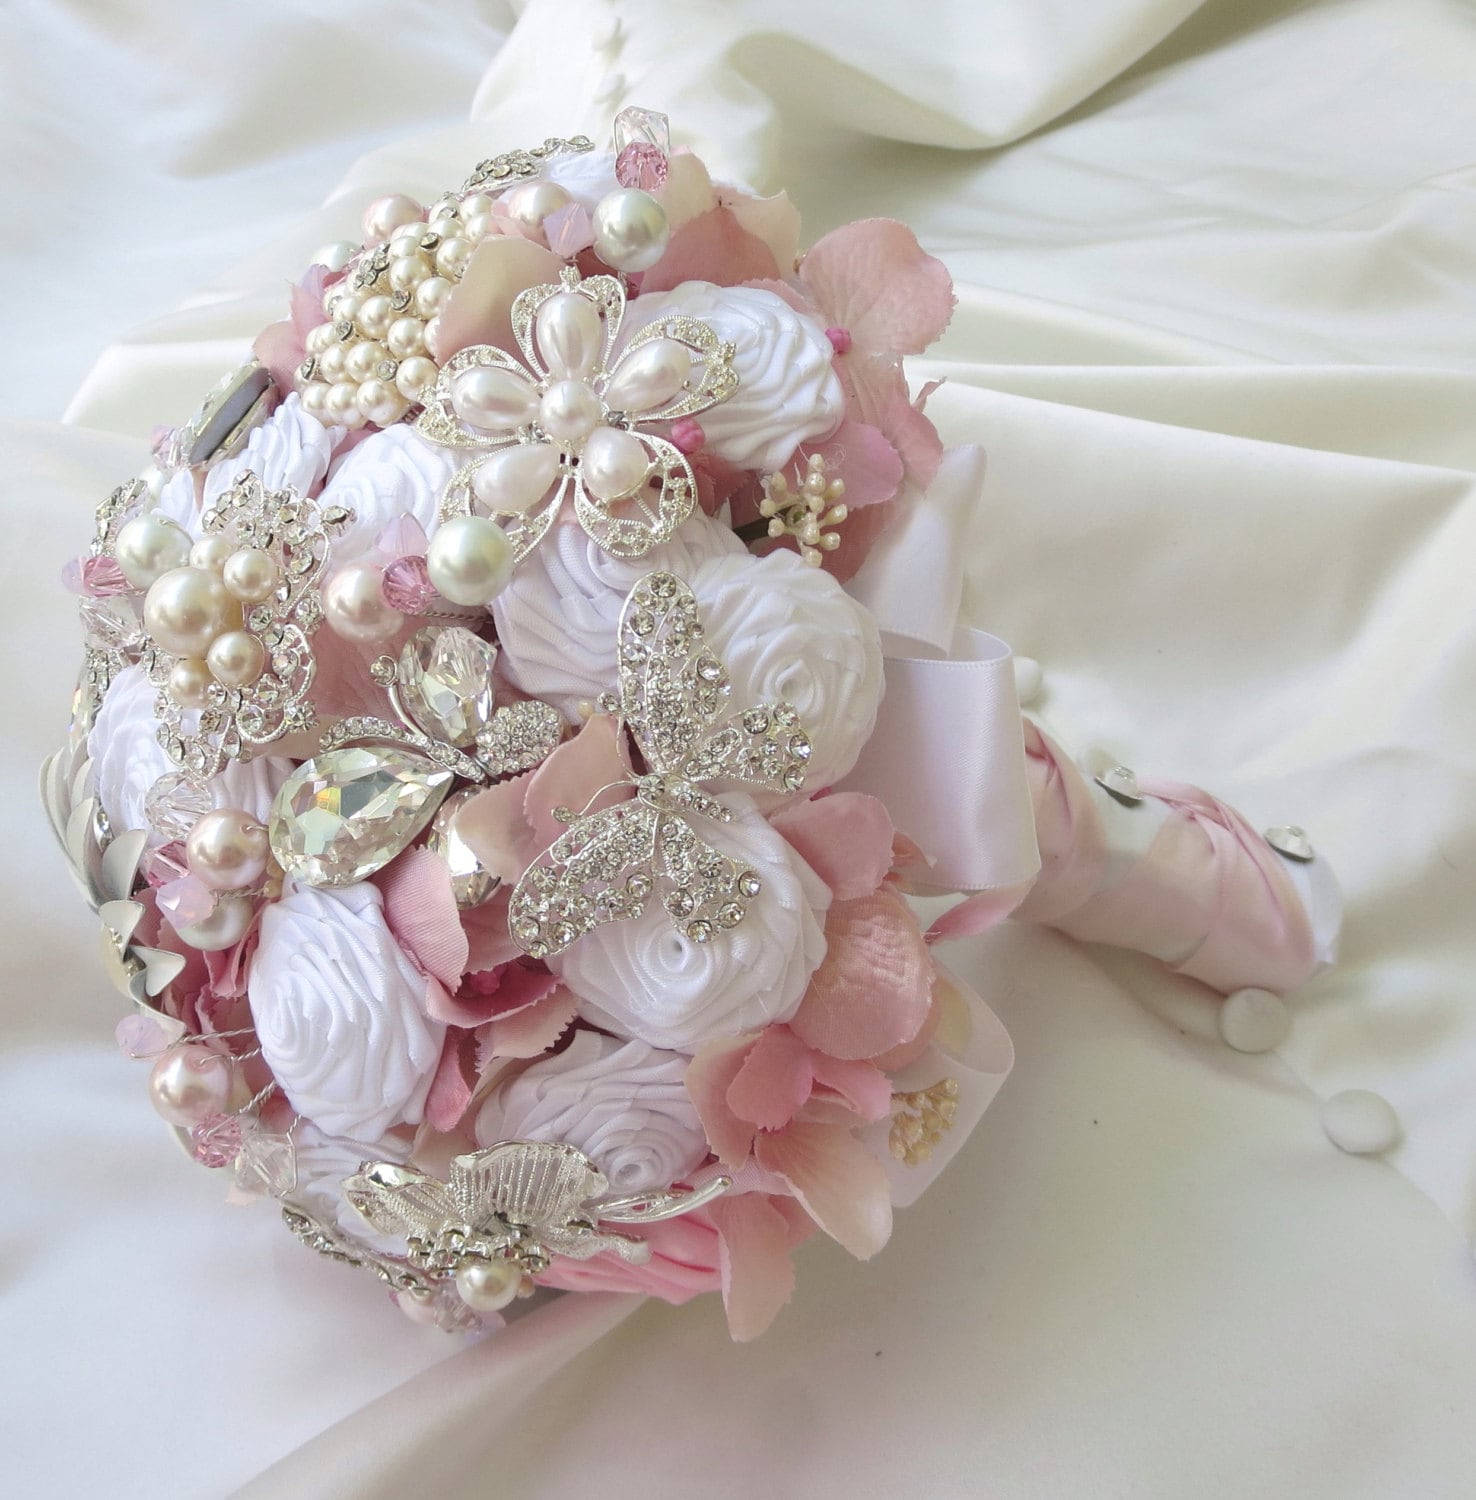 Button Bridal Bouquet Etsy : Bridal brooch bouquet wedding pink by